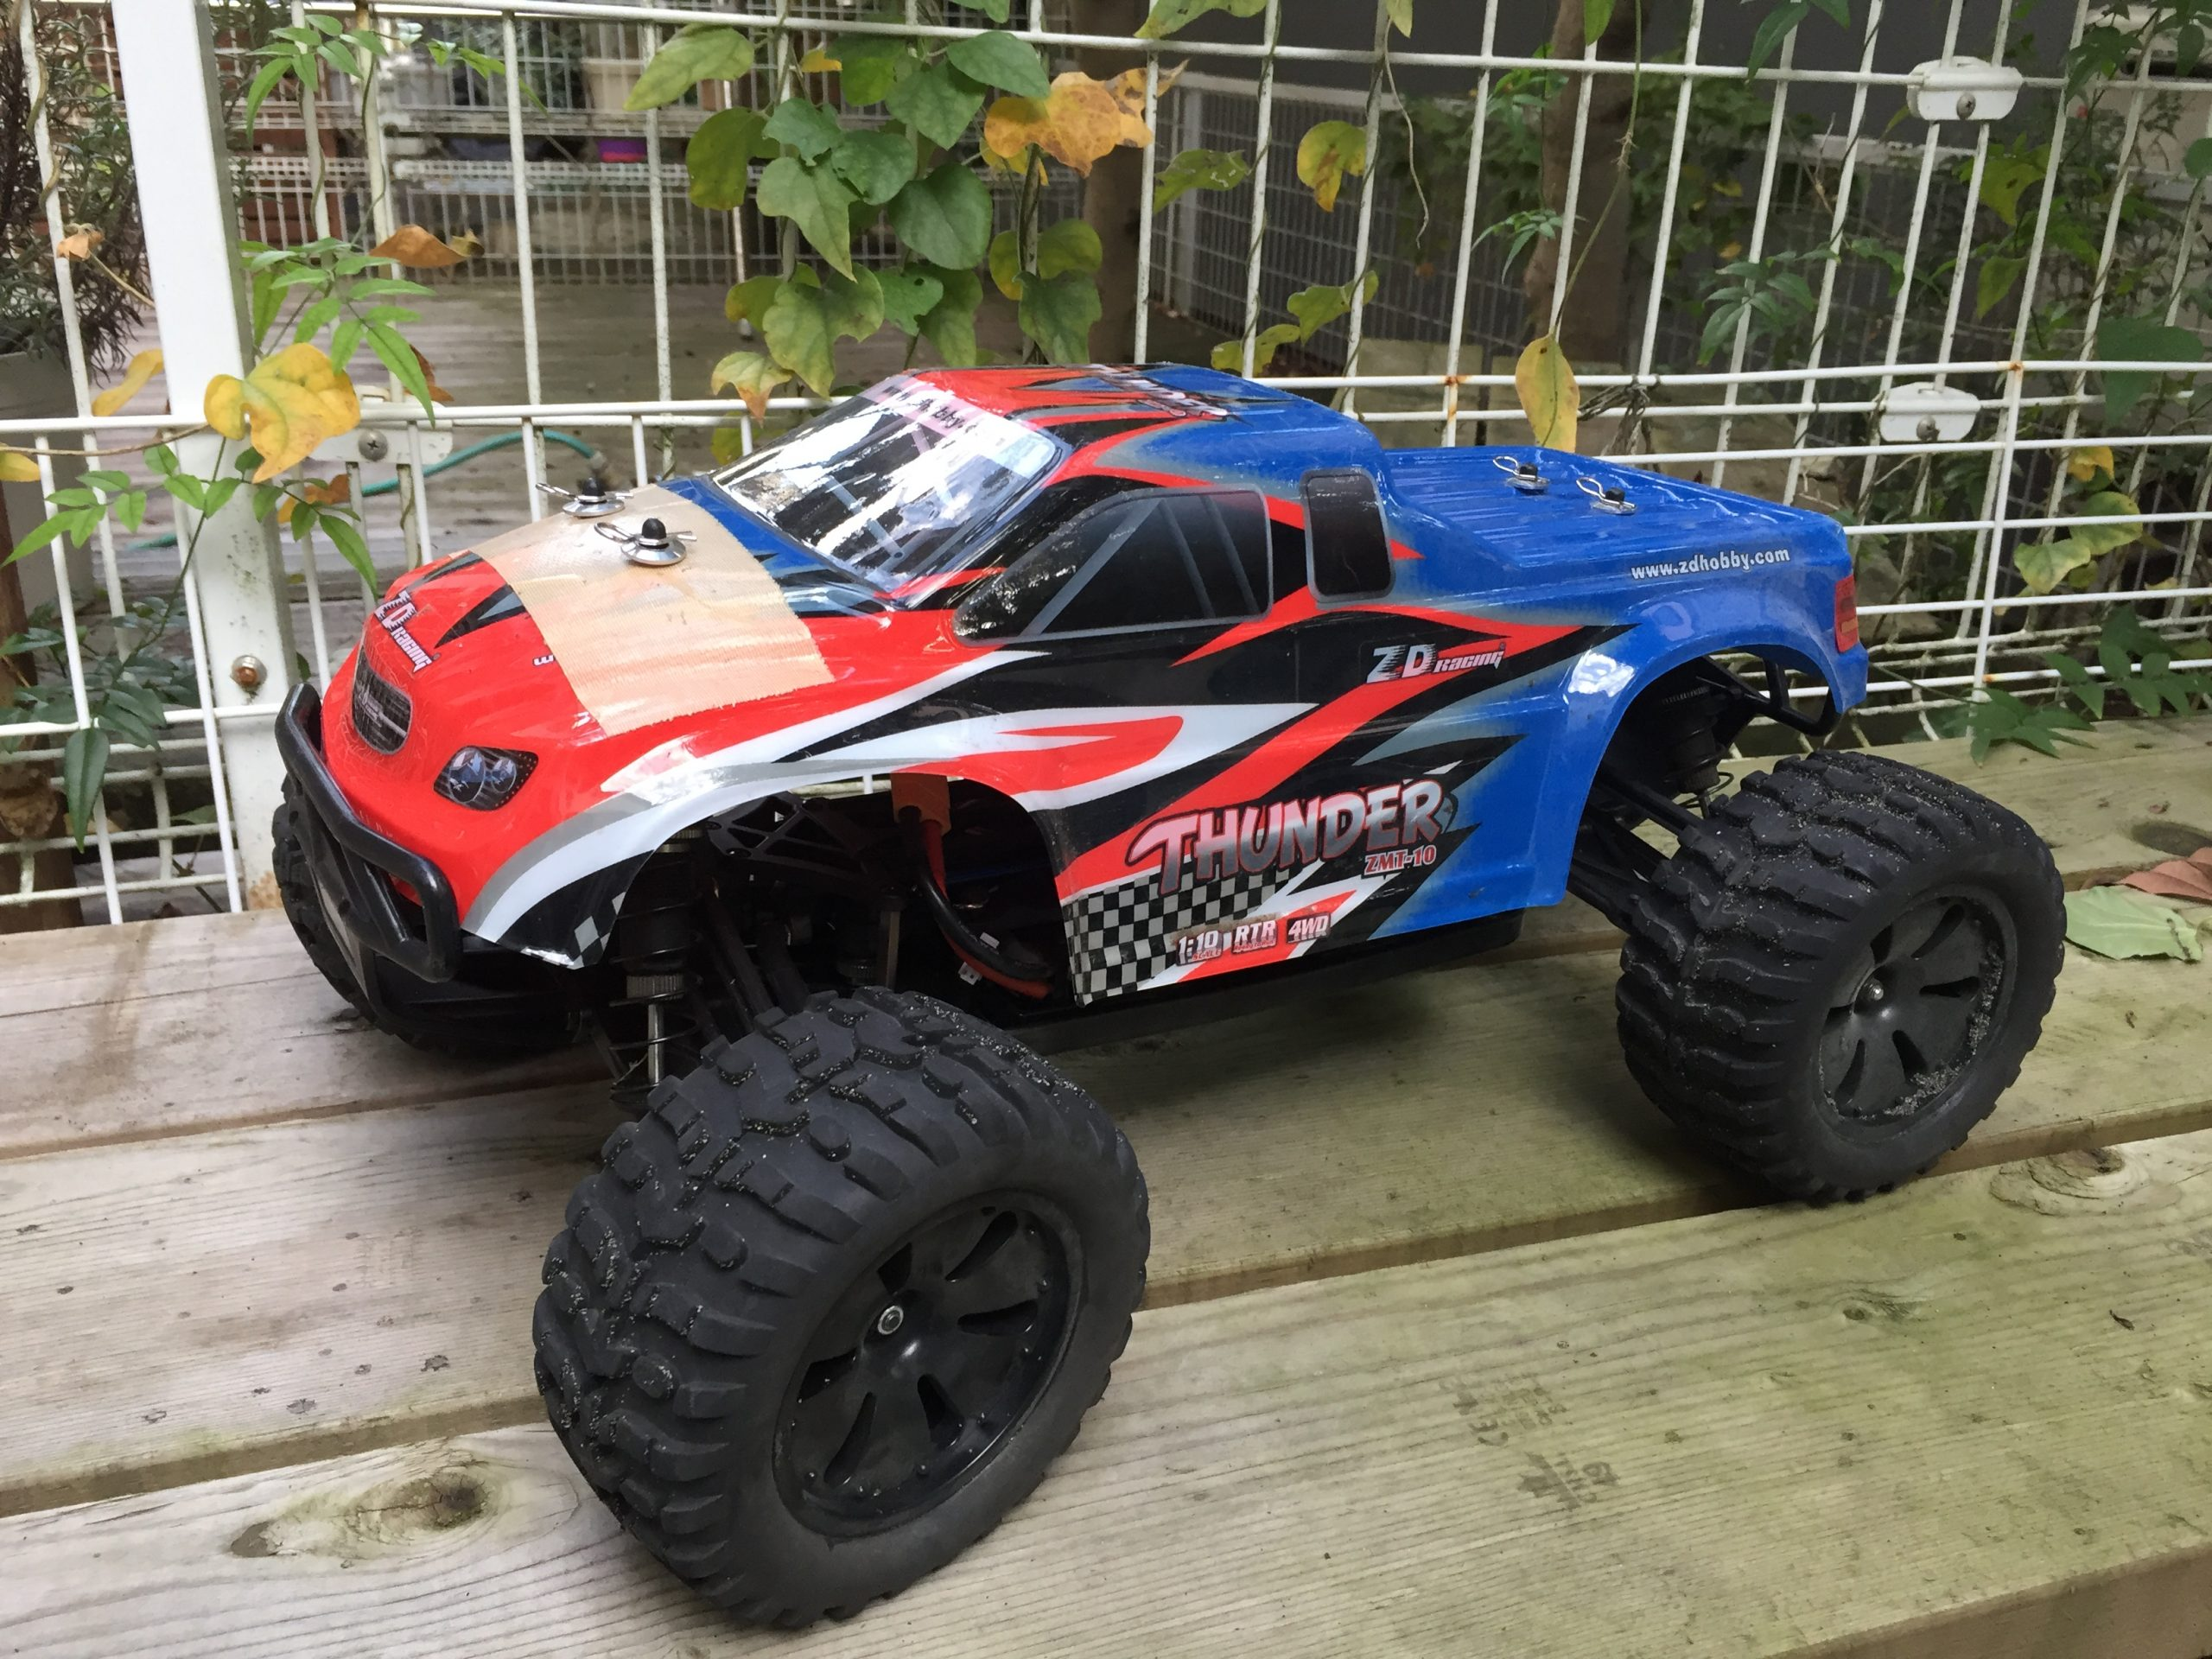 ZD Racing Thunder (ZMT-10 / 10427 – S / 9106)